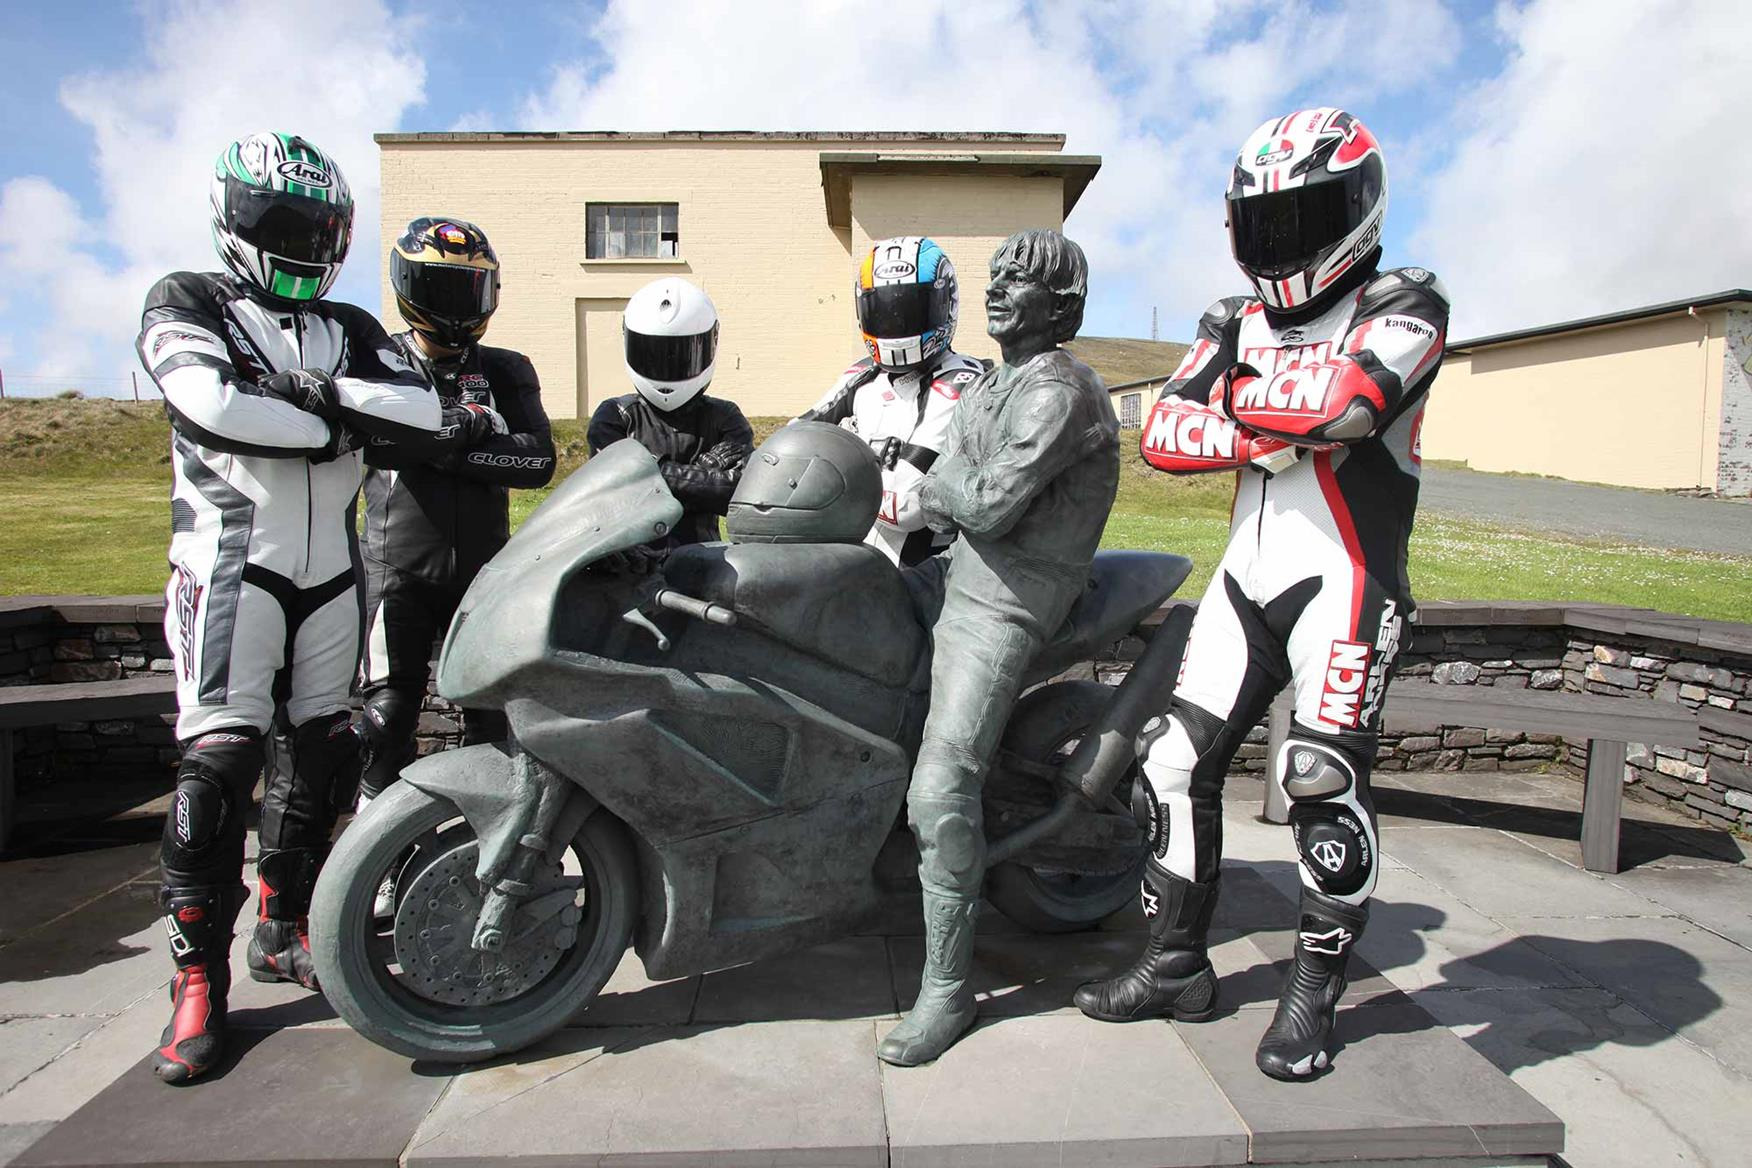 MCN road testers visit the Joey Dunlop statue on the Isle of Man